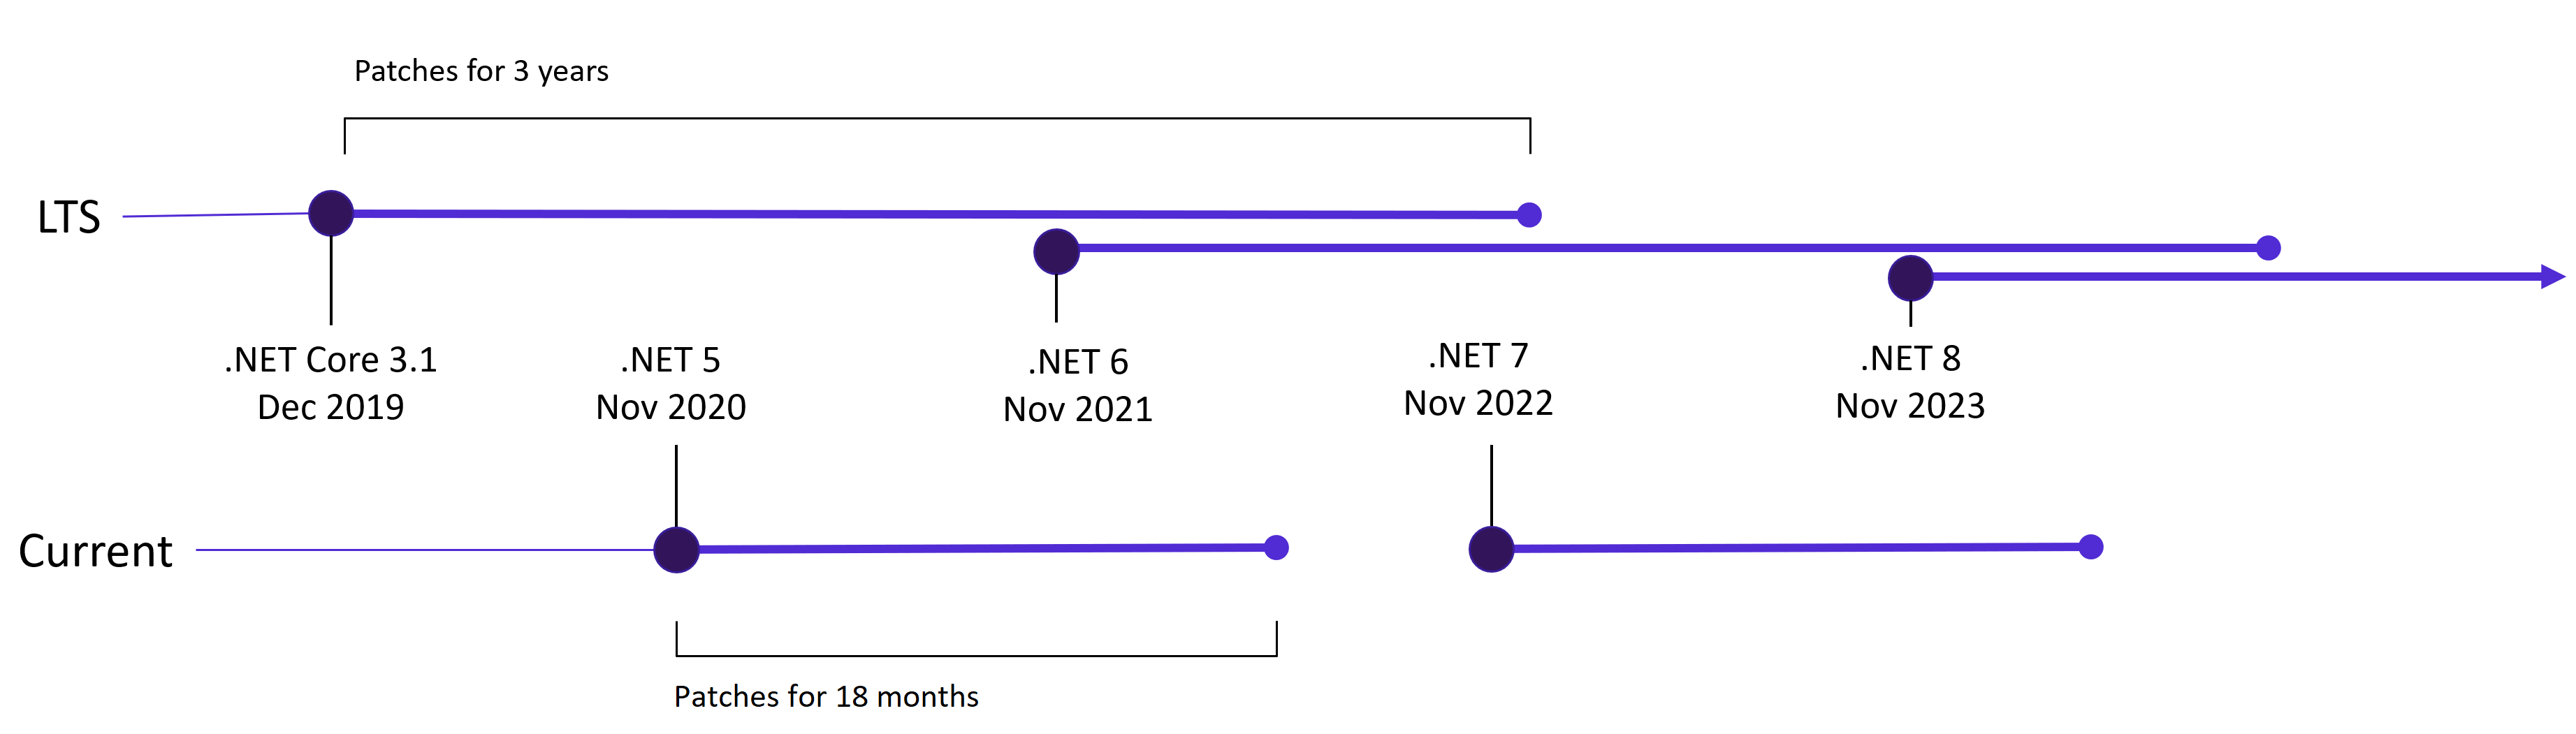 NET Official Support Policy